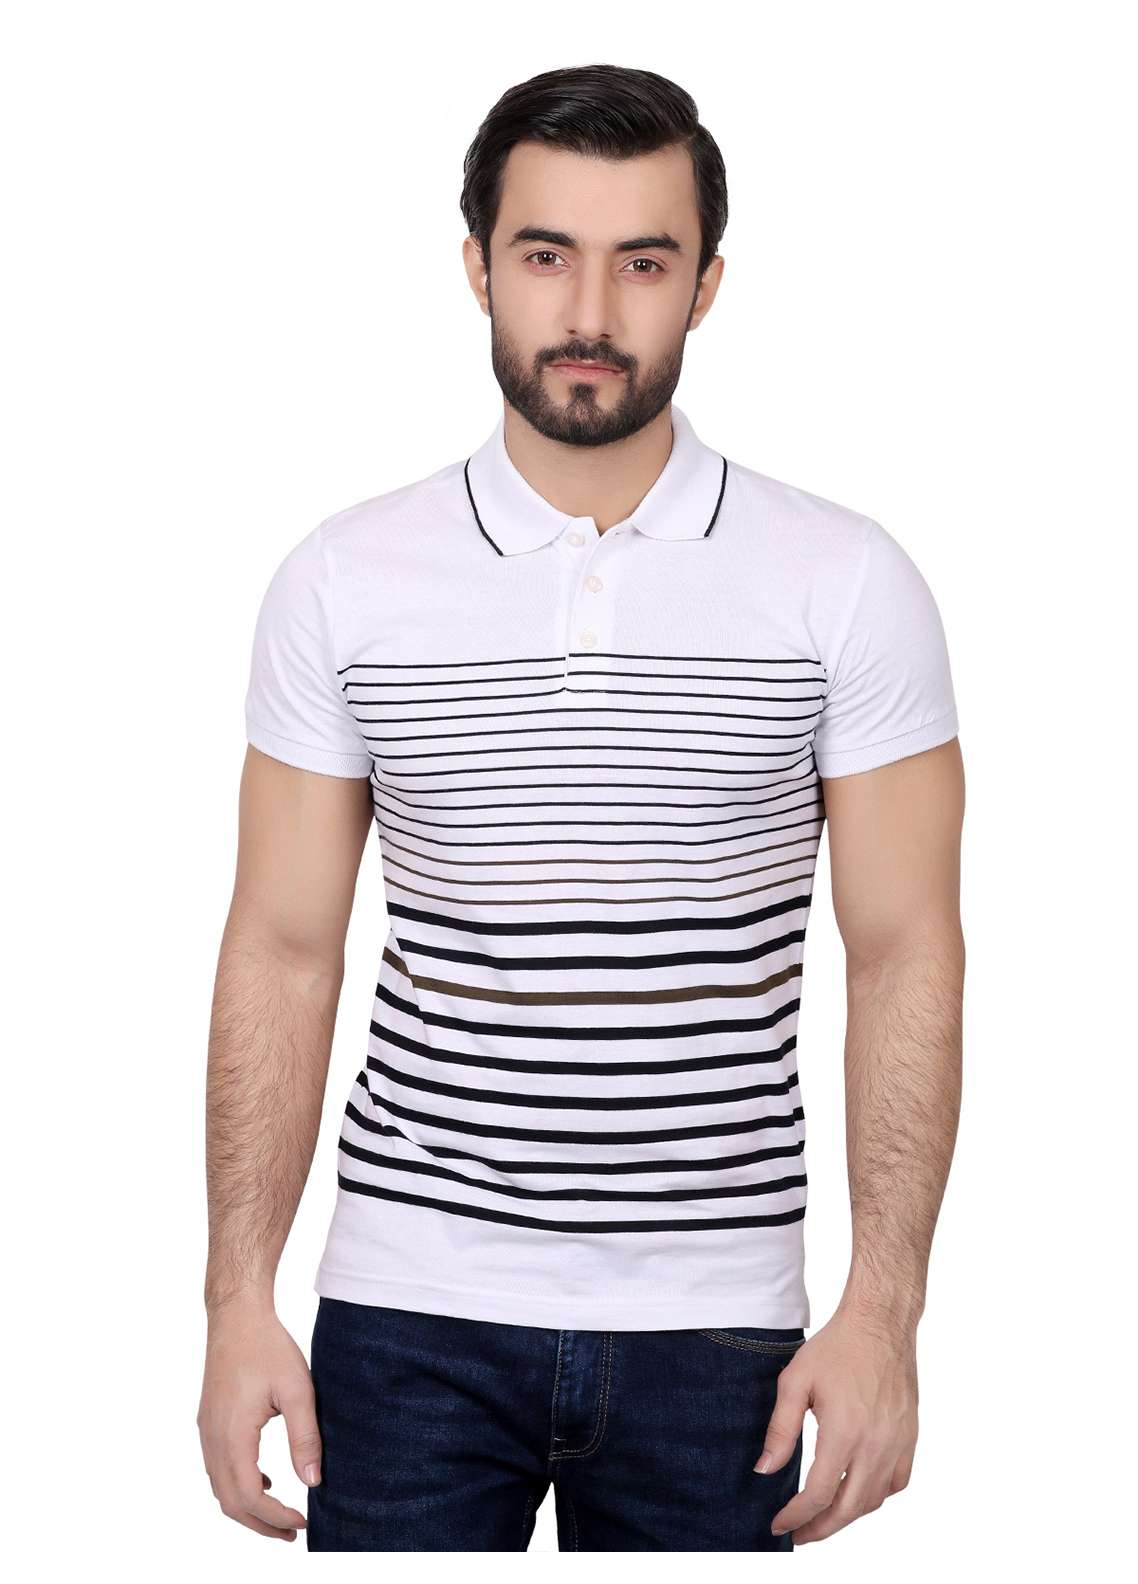 Furor Cotton Polo T-Shirts for Men - White FRM18PS 022